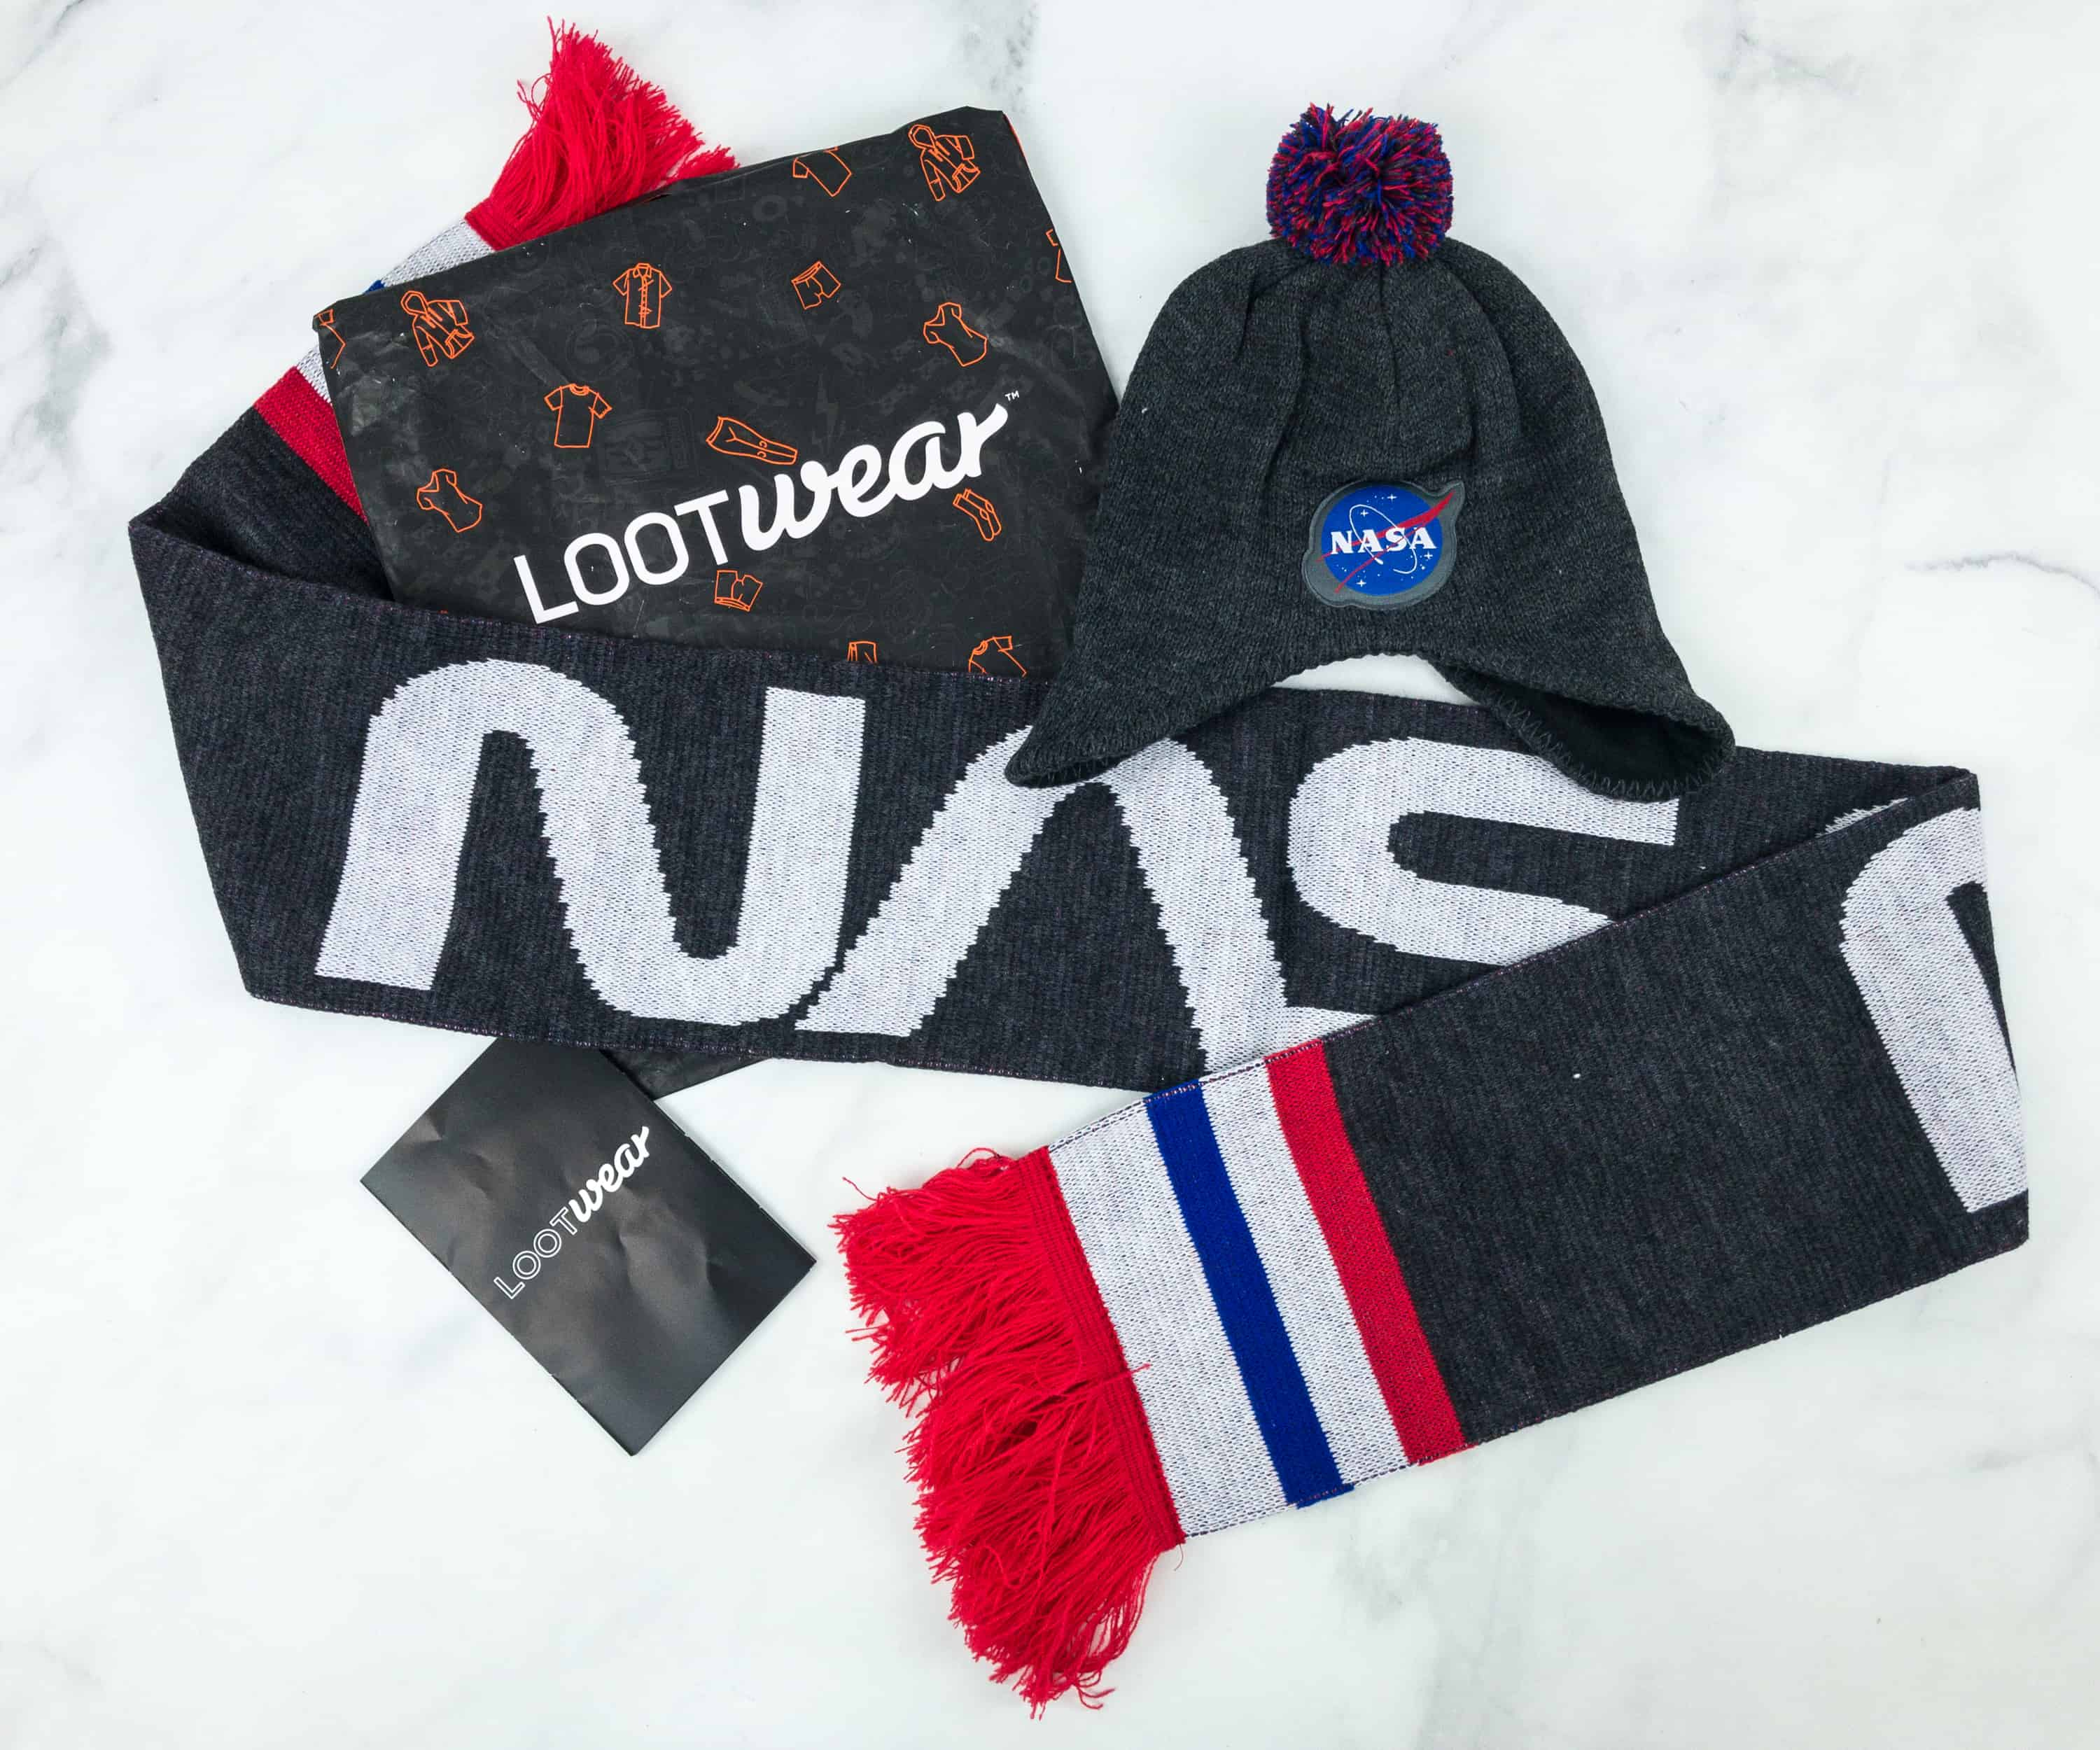 Loot Wearables Subscription by Loot Crate November 2018 Review & Coupon